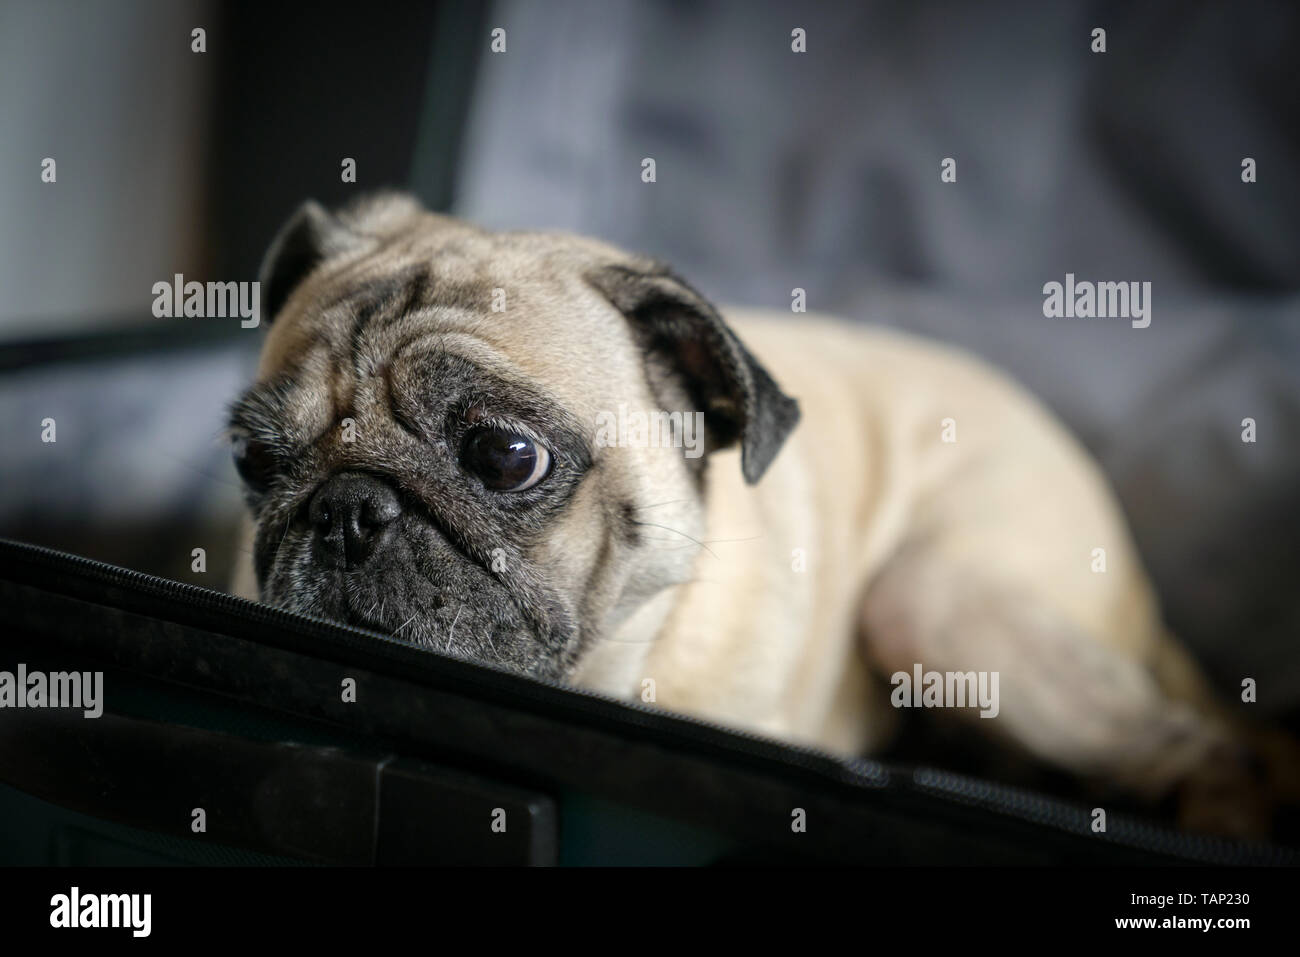 Pug dog in as suitcase  Travel or dog adoption concept Stock Photo